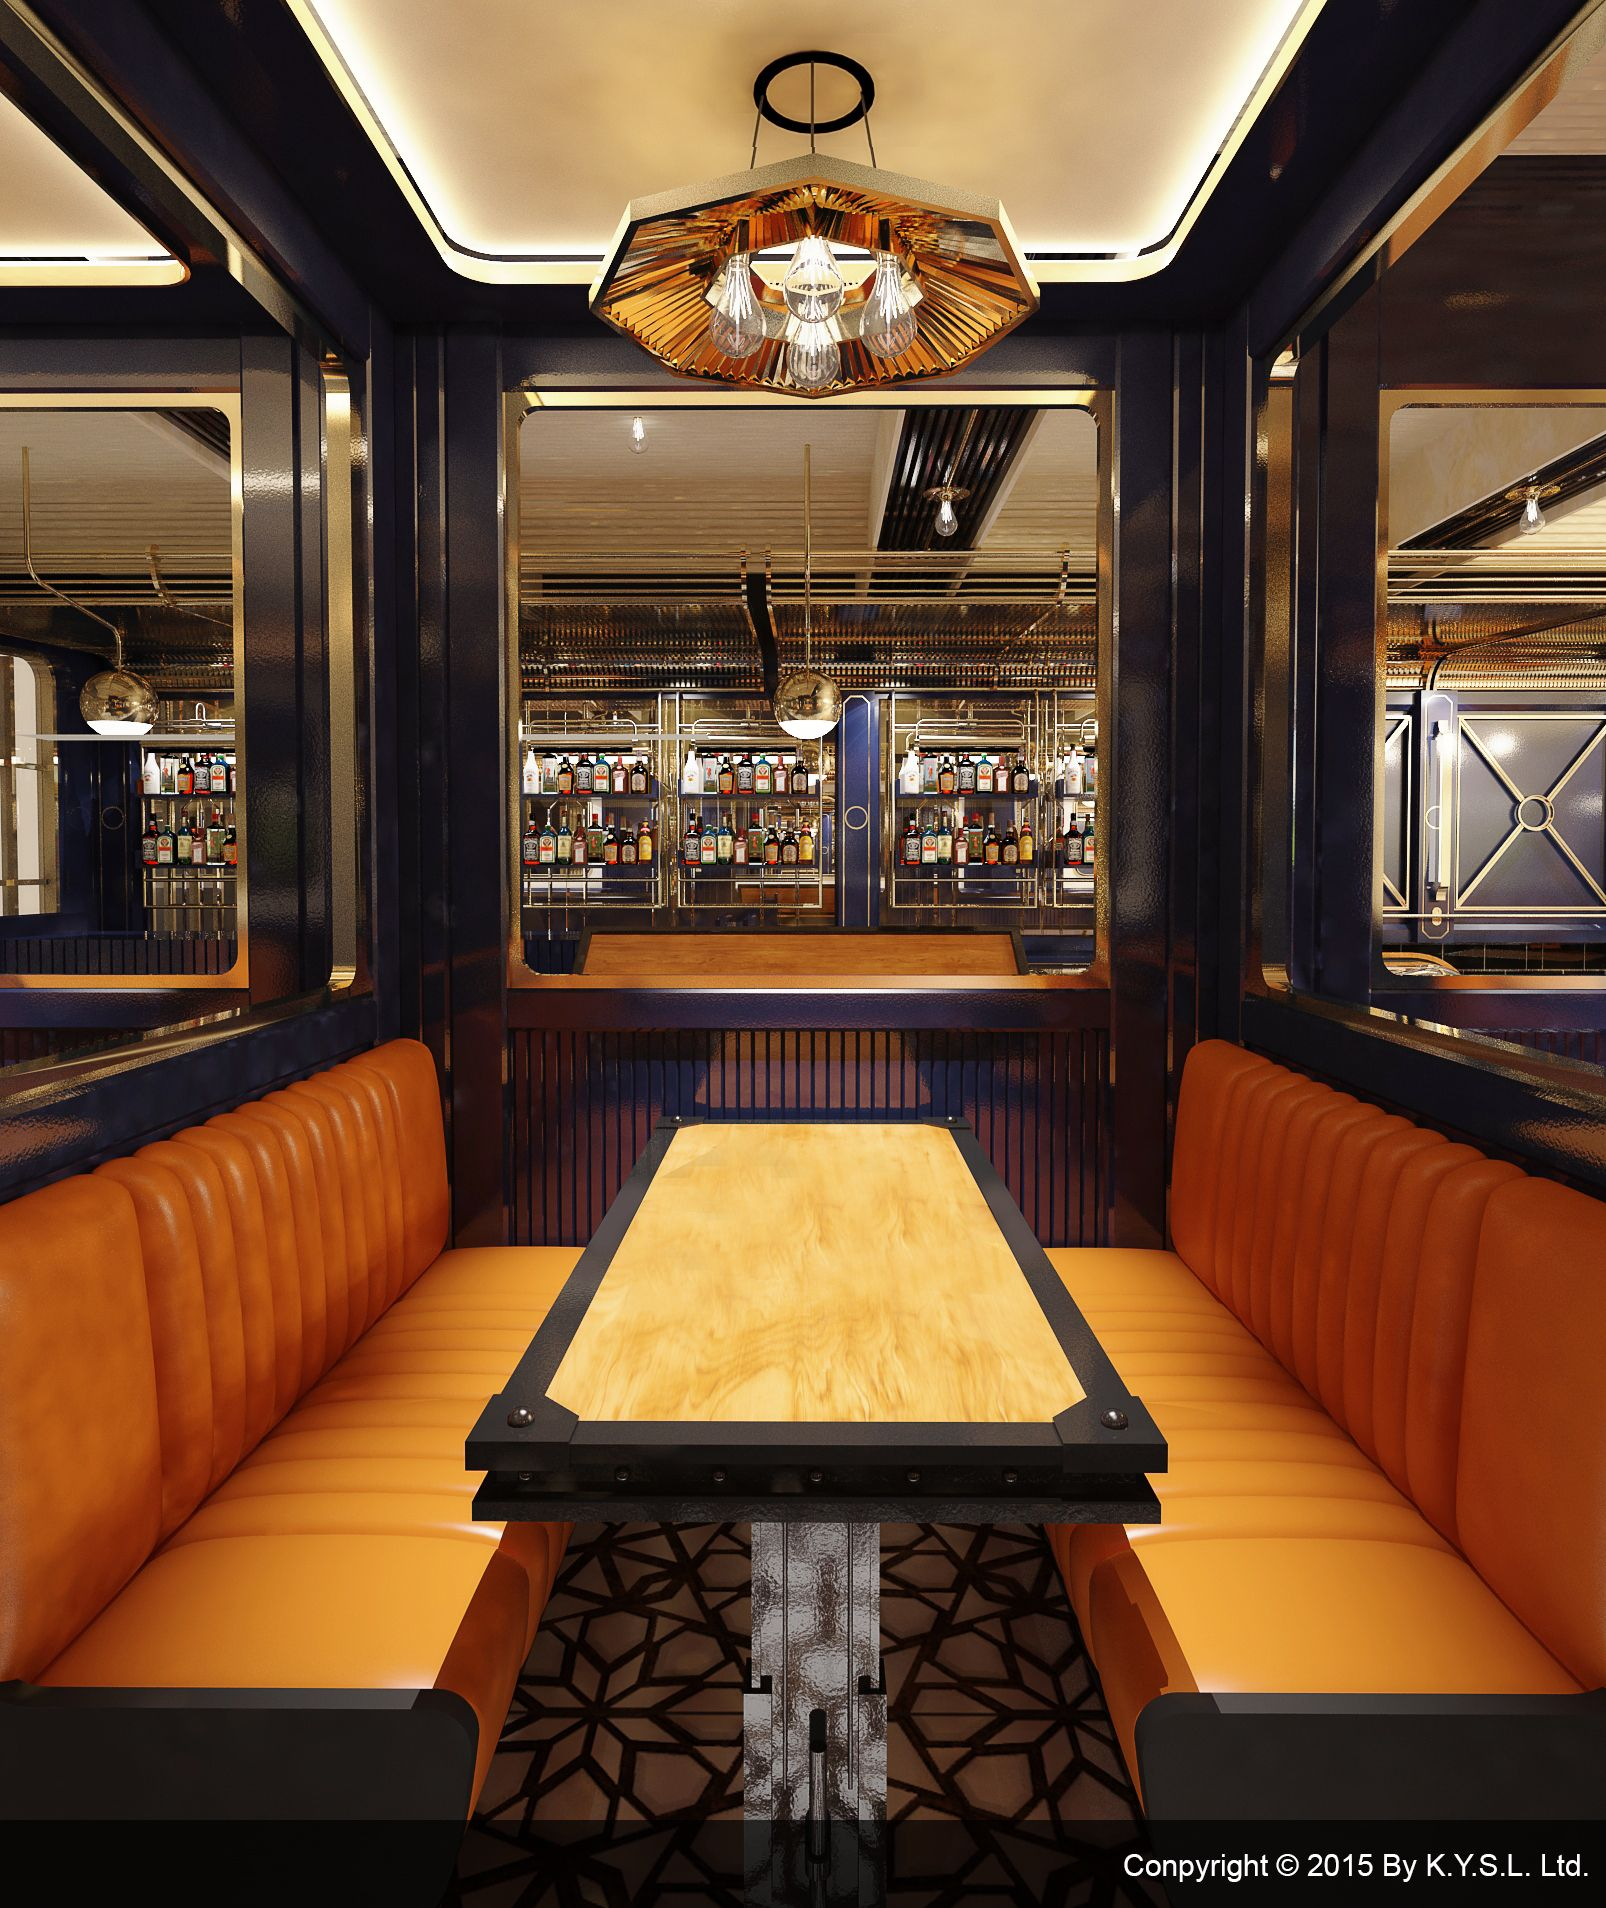 Platform 8 designed by K.Y.S.L. Ltd. An art deco restaurant & Bar ...